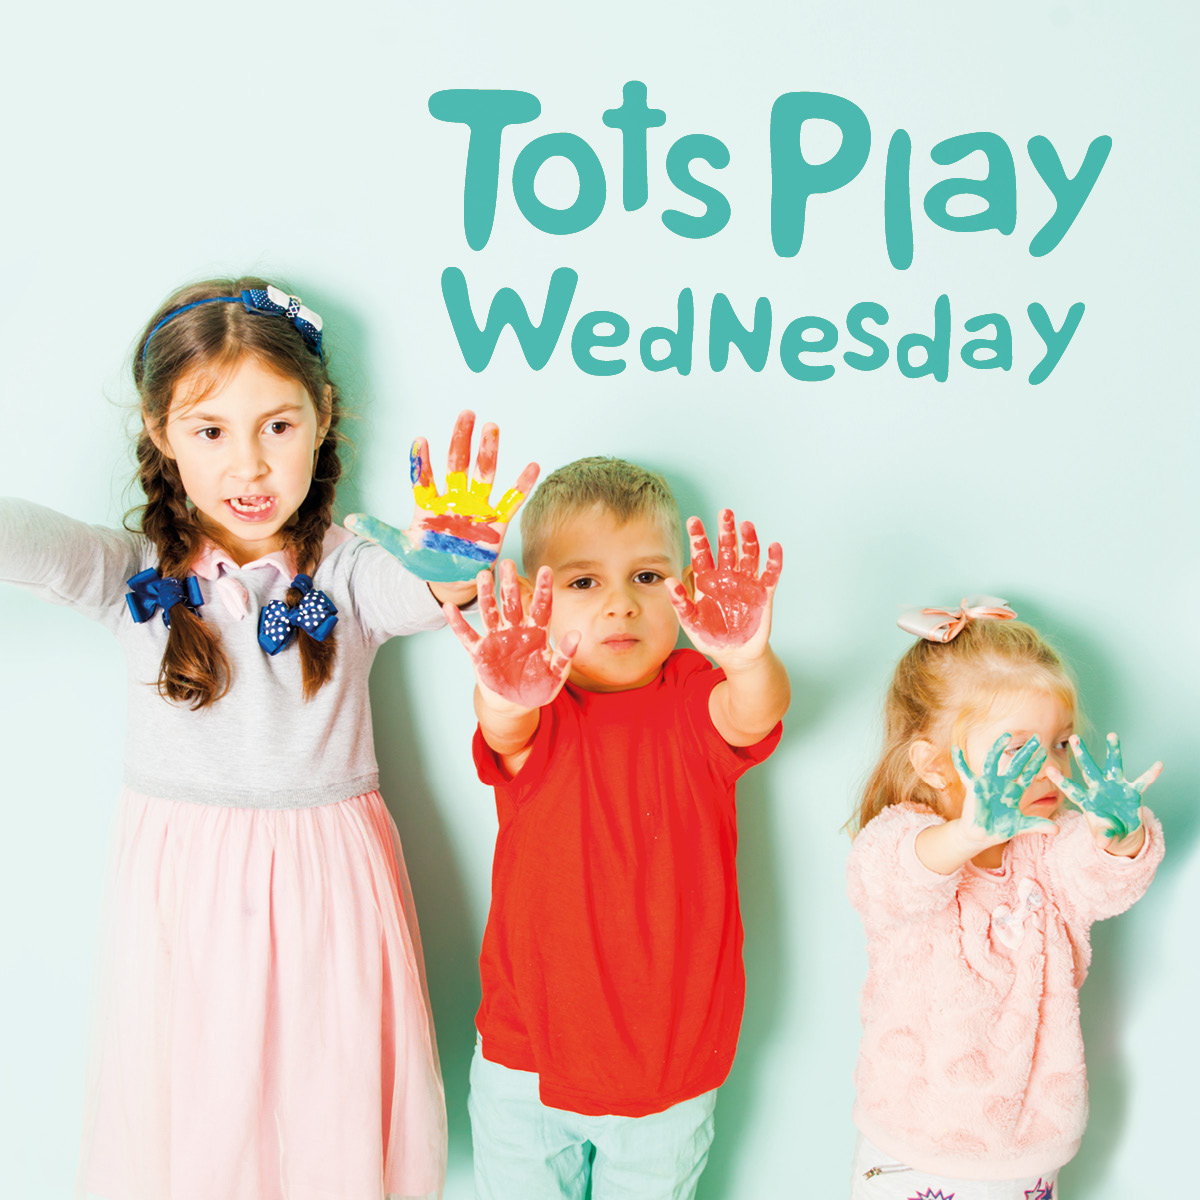 Tots Play Wednesday